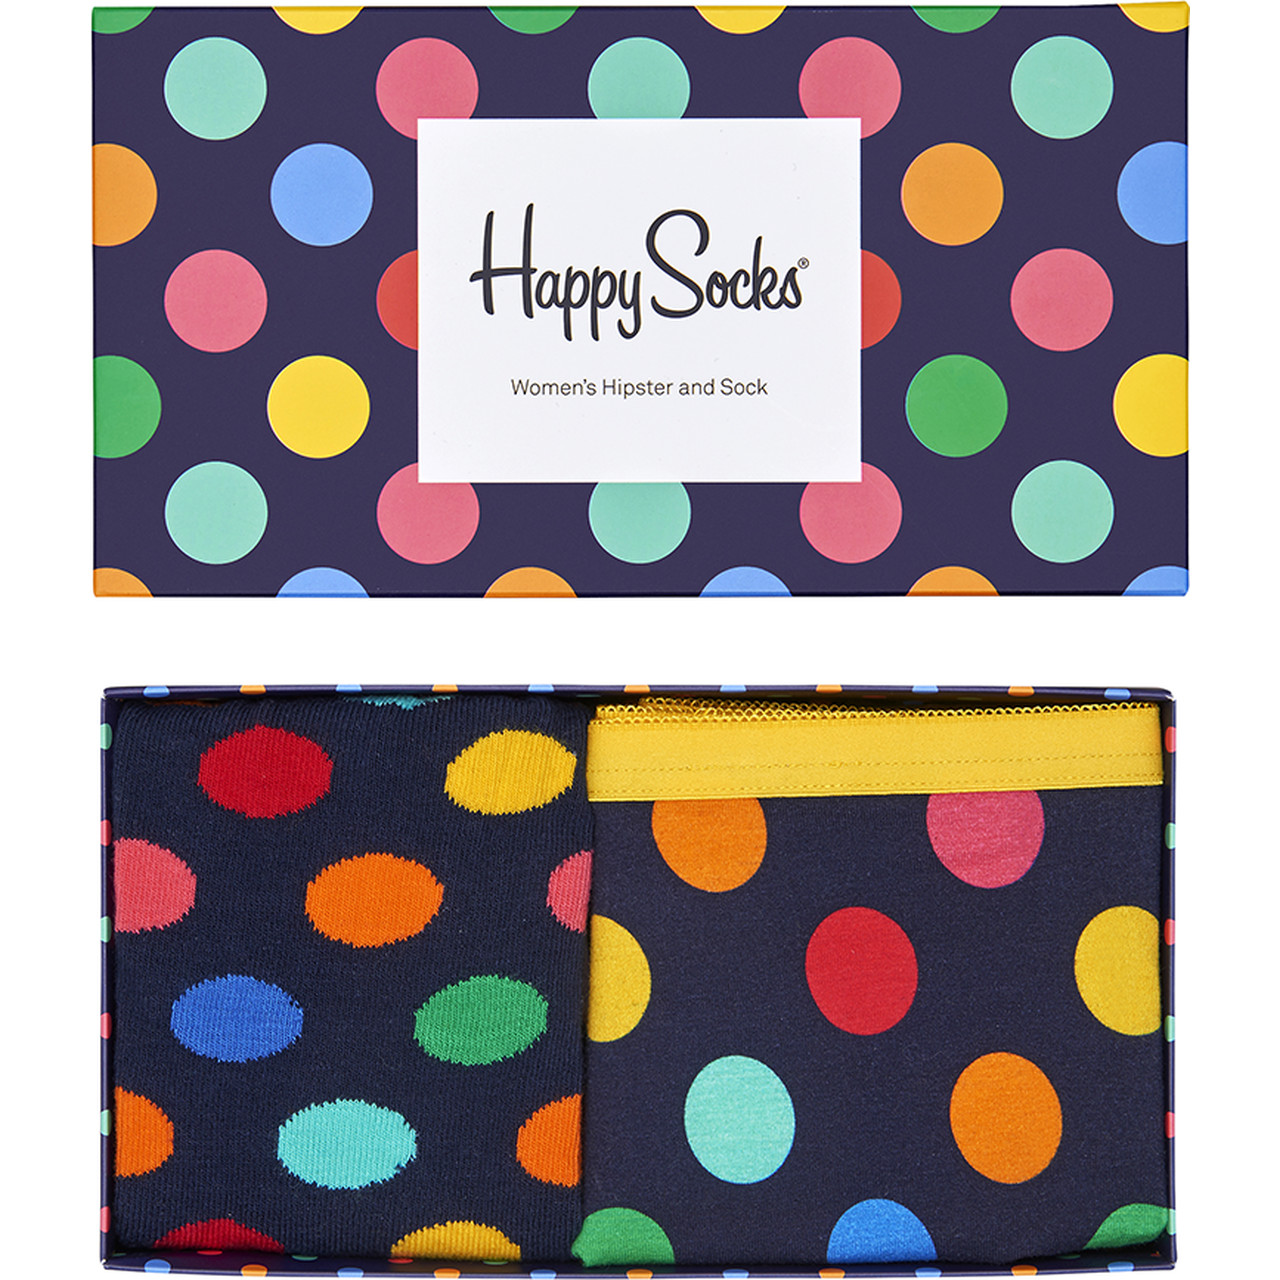 Zestaw skarpet i majtek 2Pack Happy Socks  <br/><small>Big Dot Women's Hipster & Sock XBDO62-60 </small>  4885